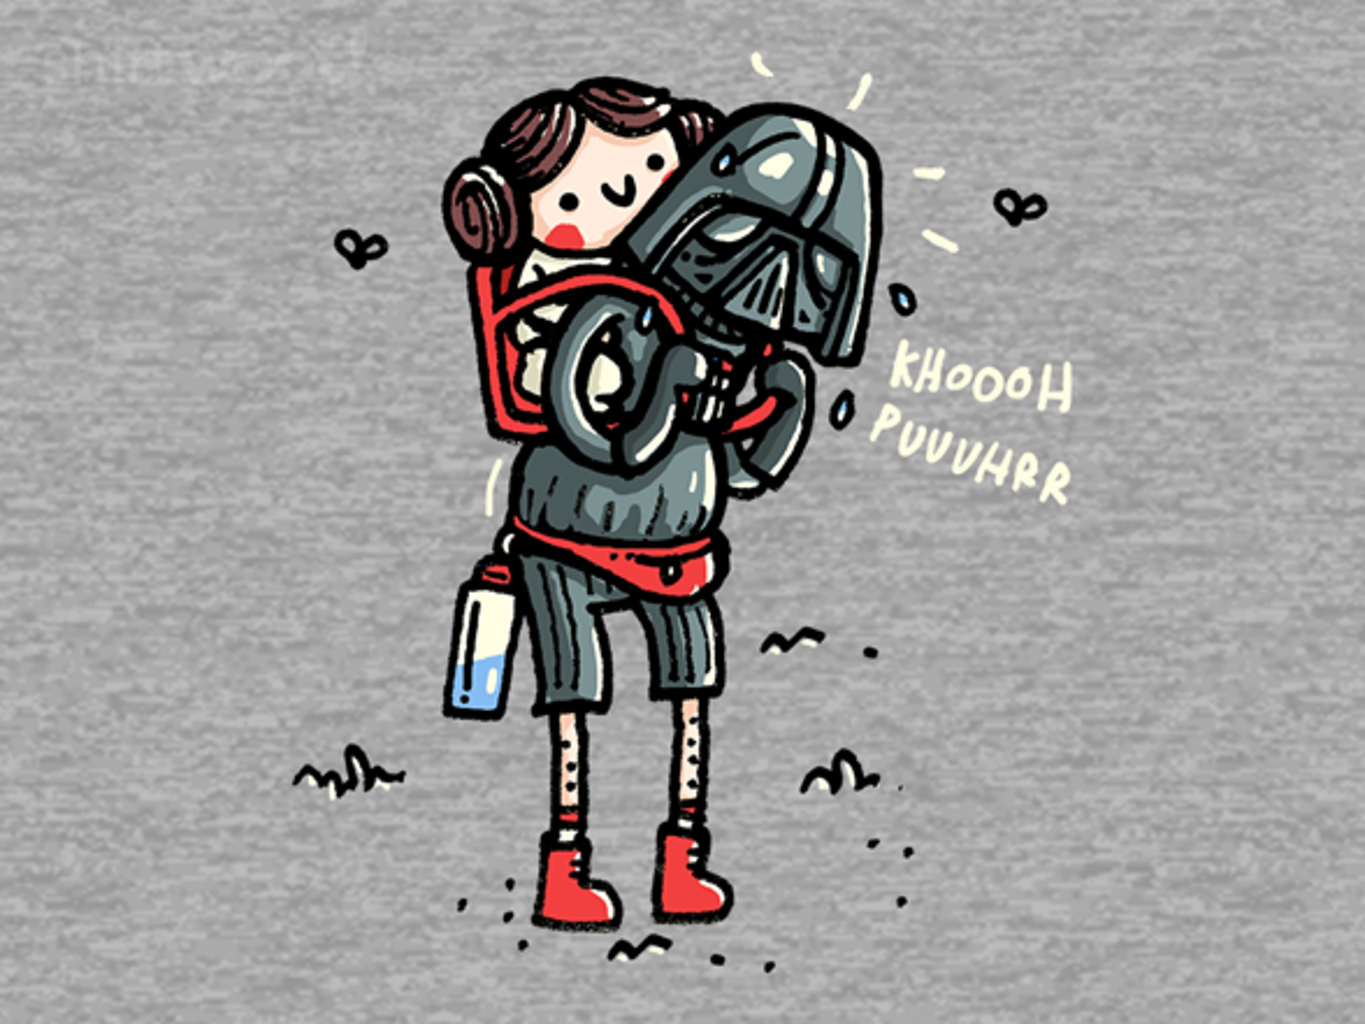 Woot!: The Dark Side of Hiking